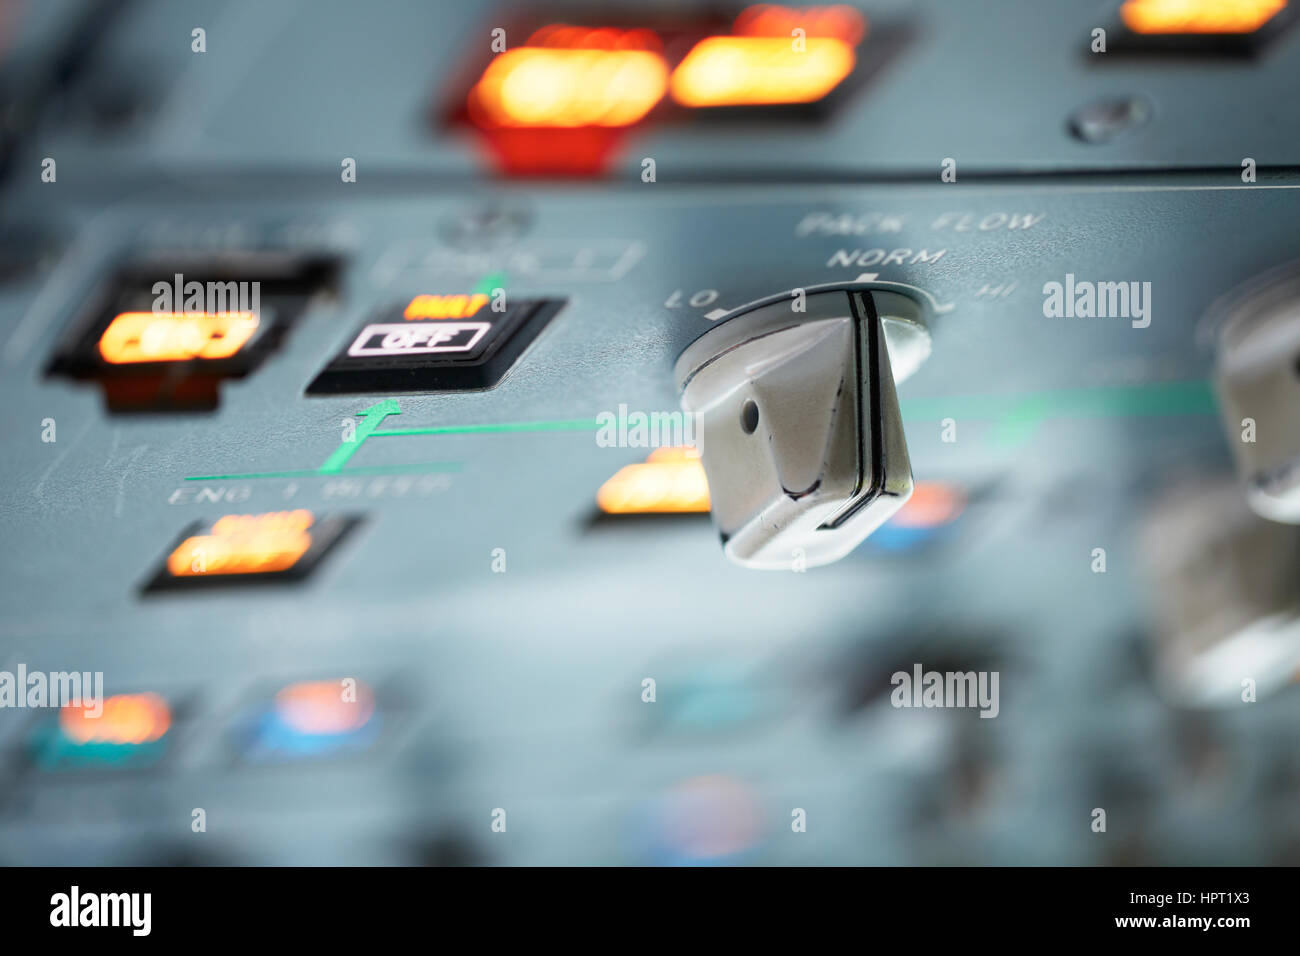 Cockpit - close up view on the control panel - Stock Image